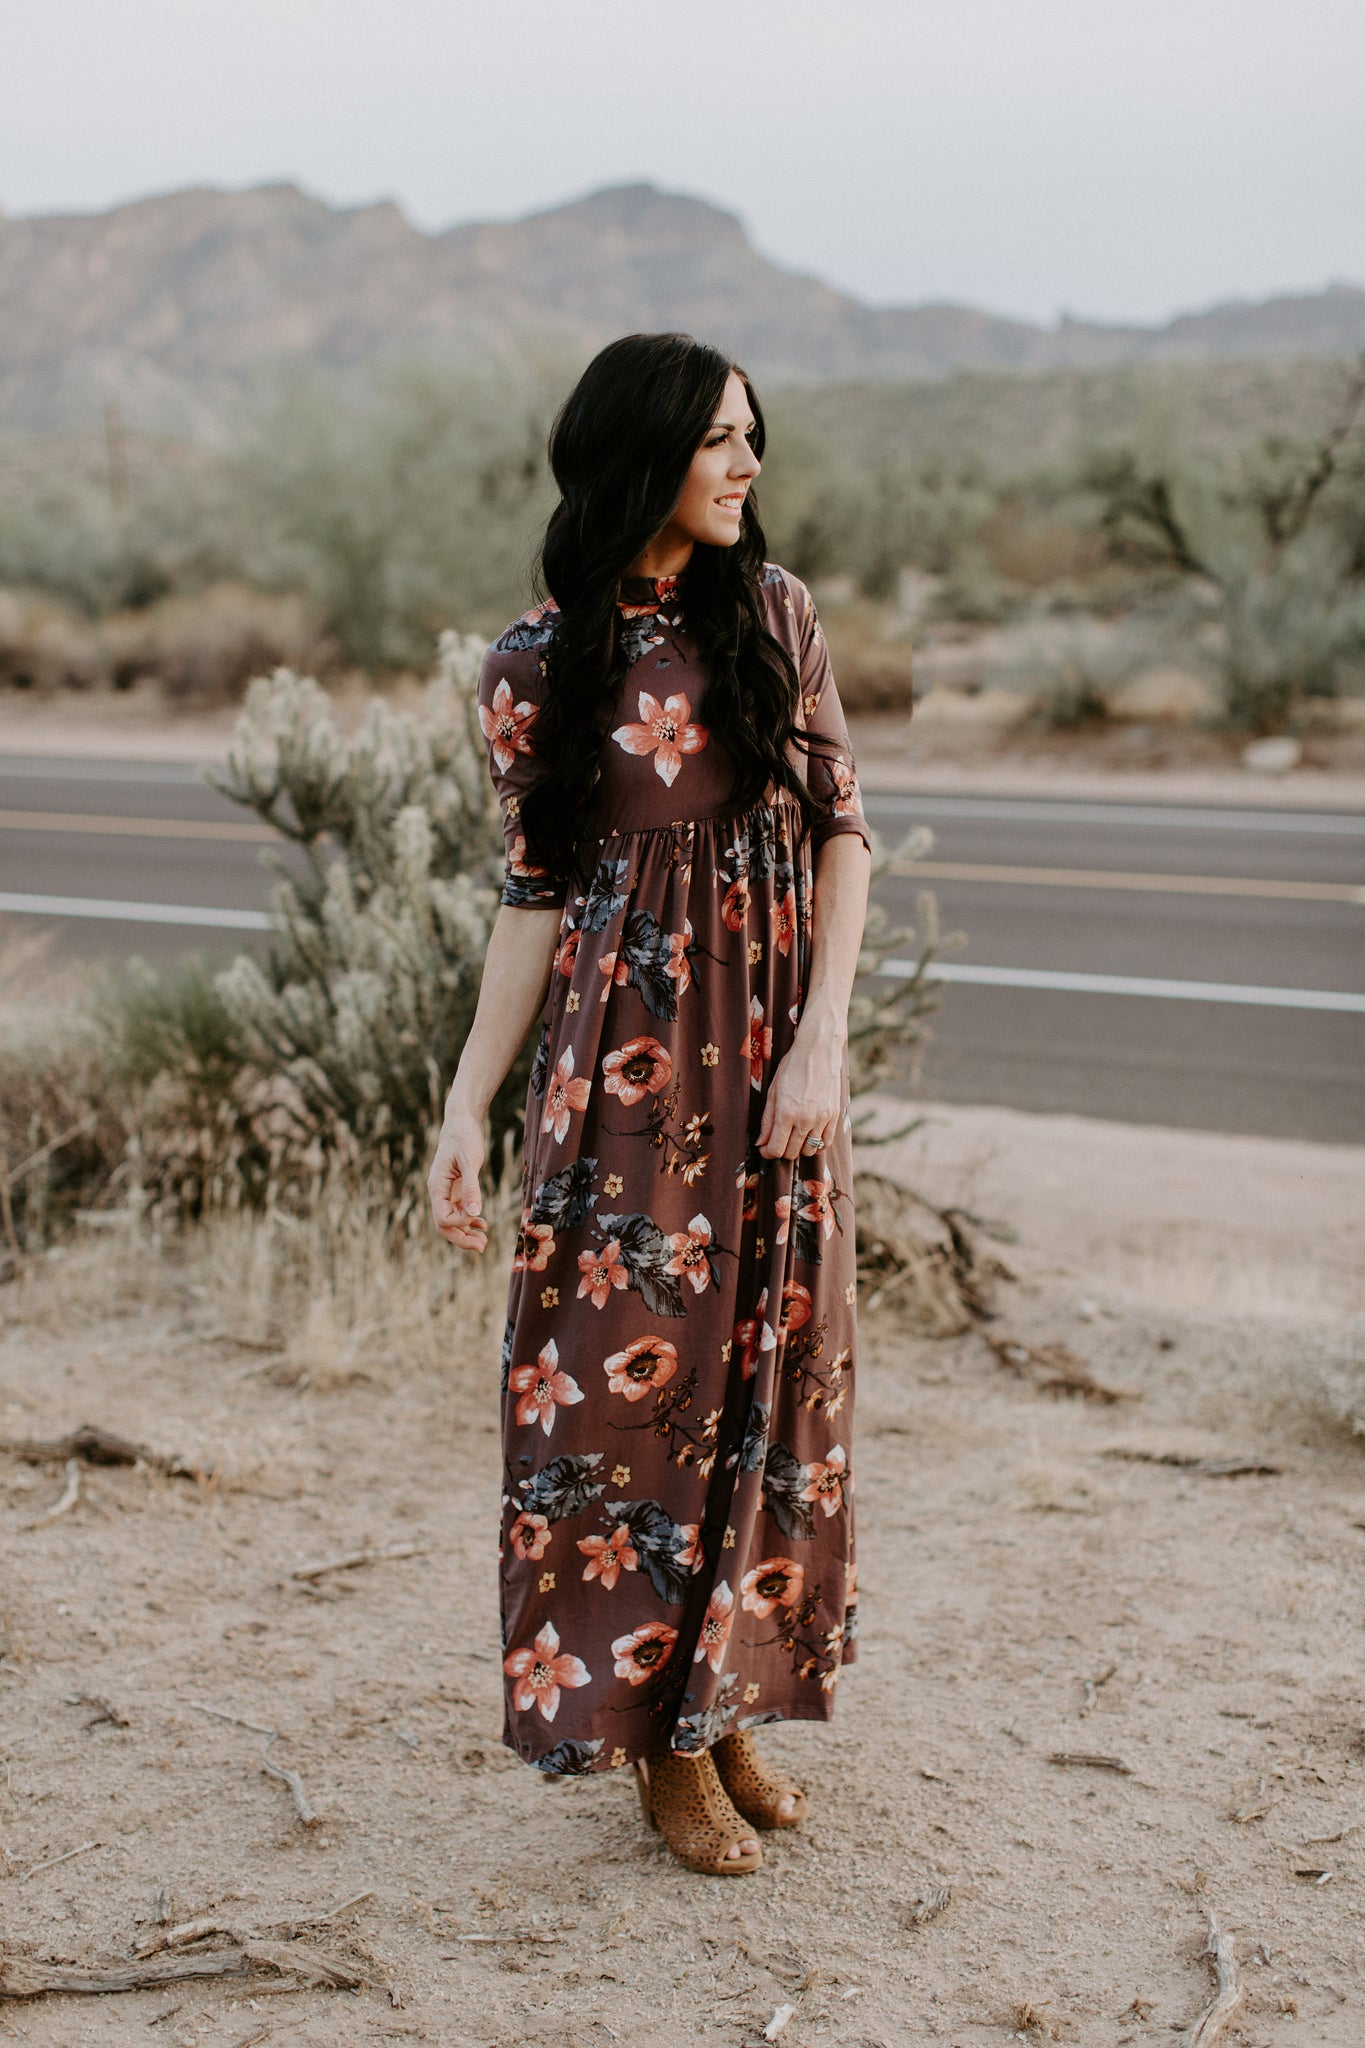 Floral Print Empire Maxi Dress with Pockets - Mauve